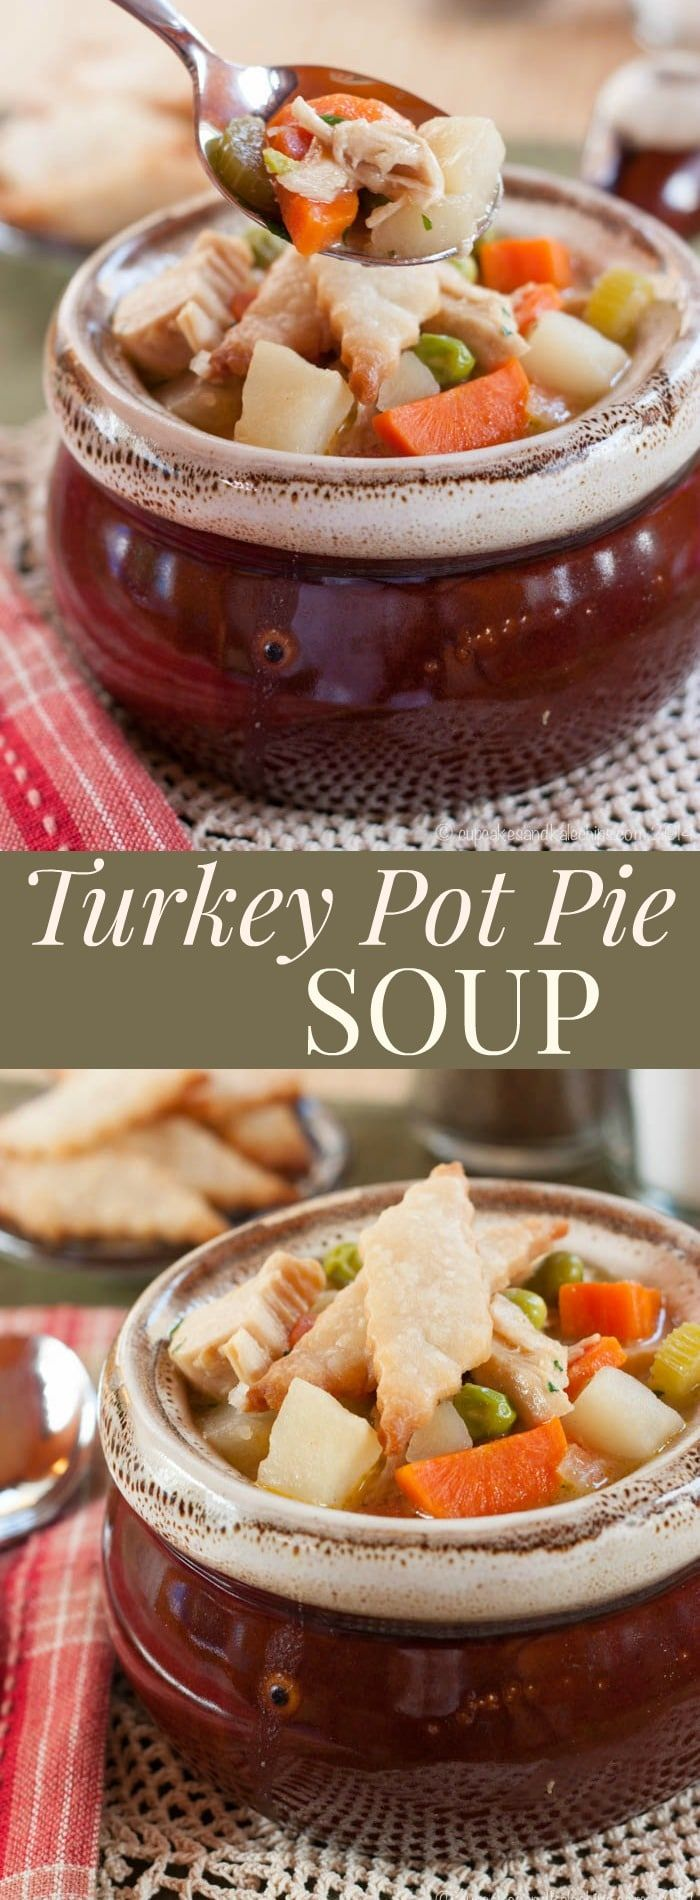 Turkey Pot Pie Soup - an easy recipe to use up Thanksgiving leftovers.